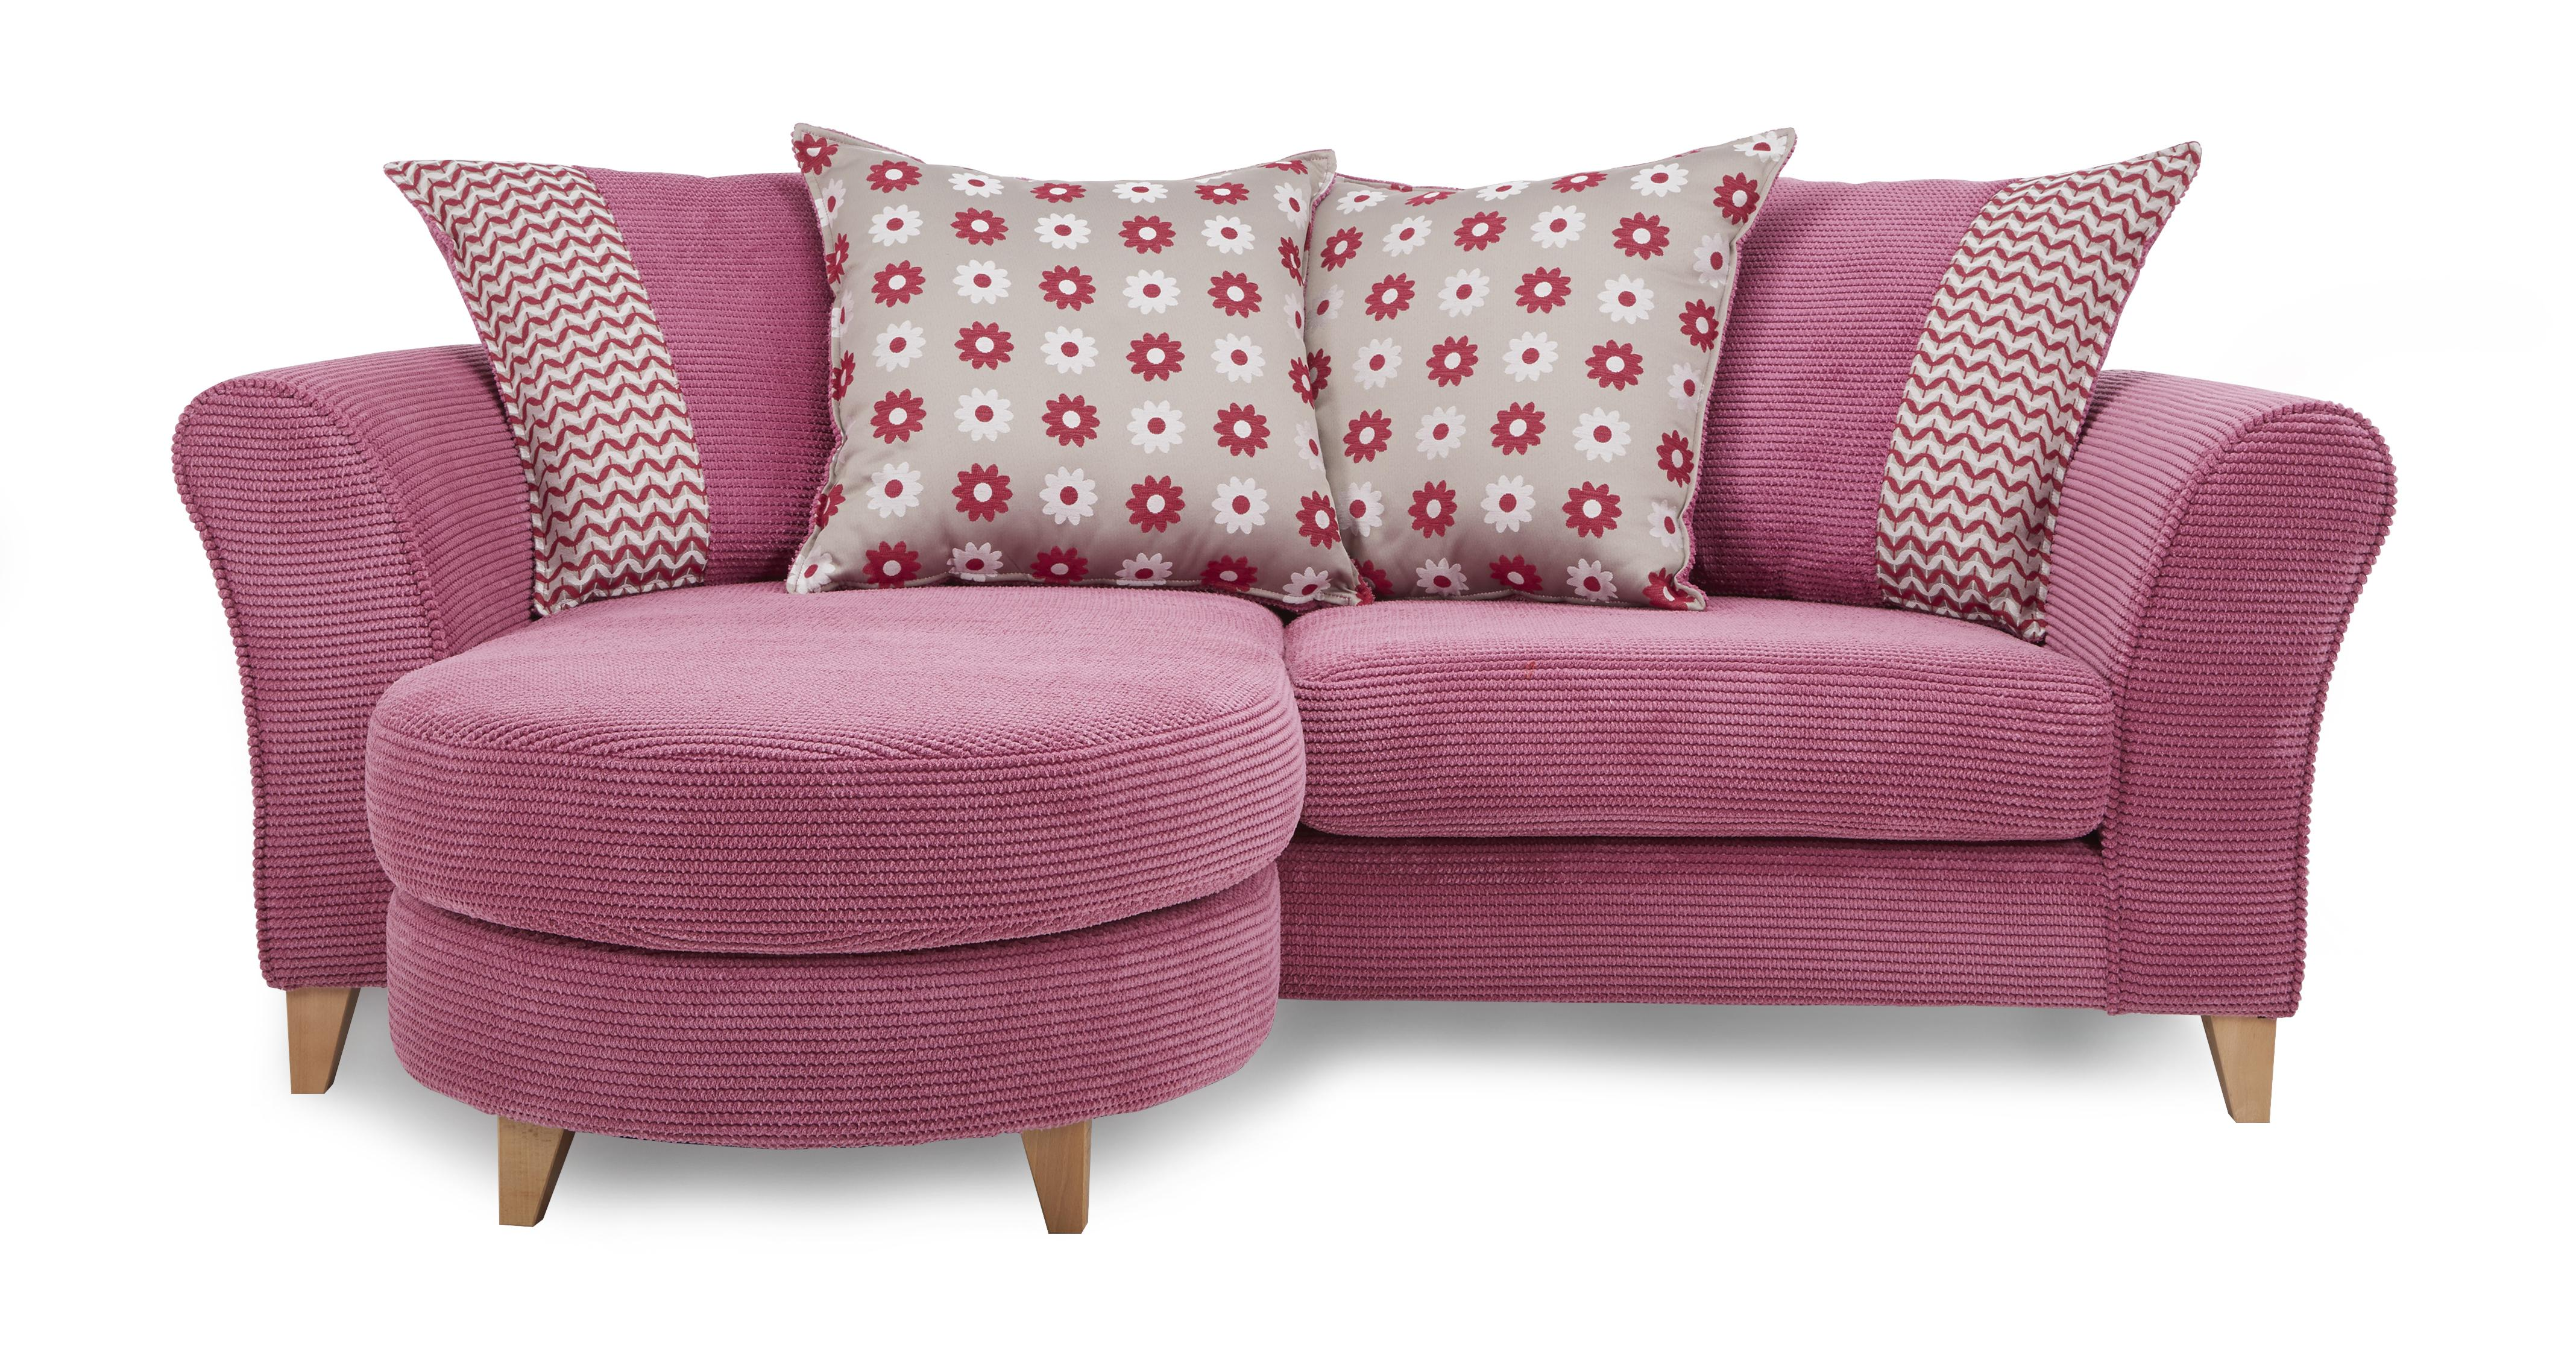 Living Spaces Dining Room Sets New 28 Pink Sofa Chair Best 25 Pink Sofa Ideas On